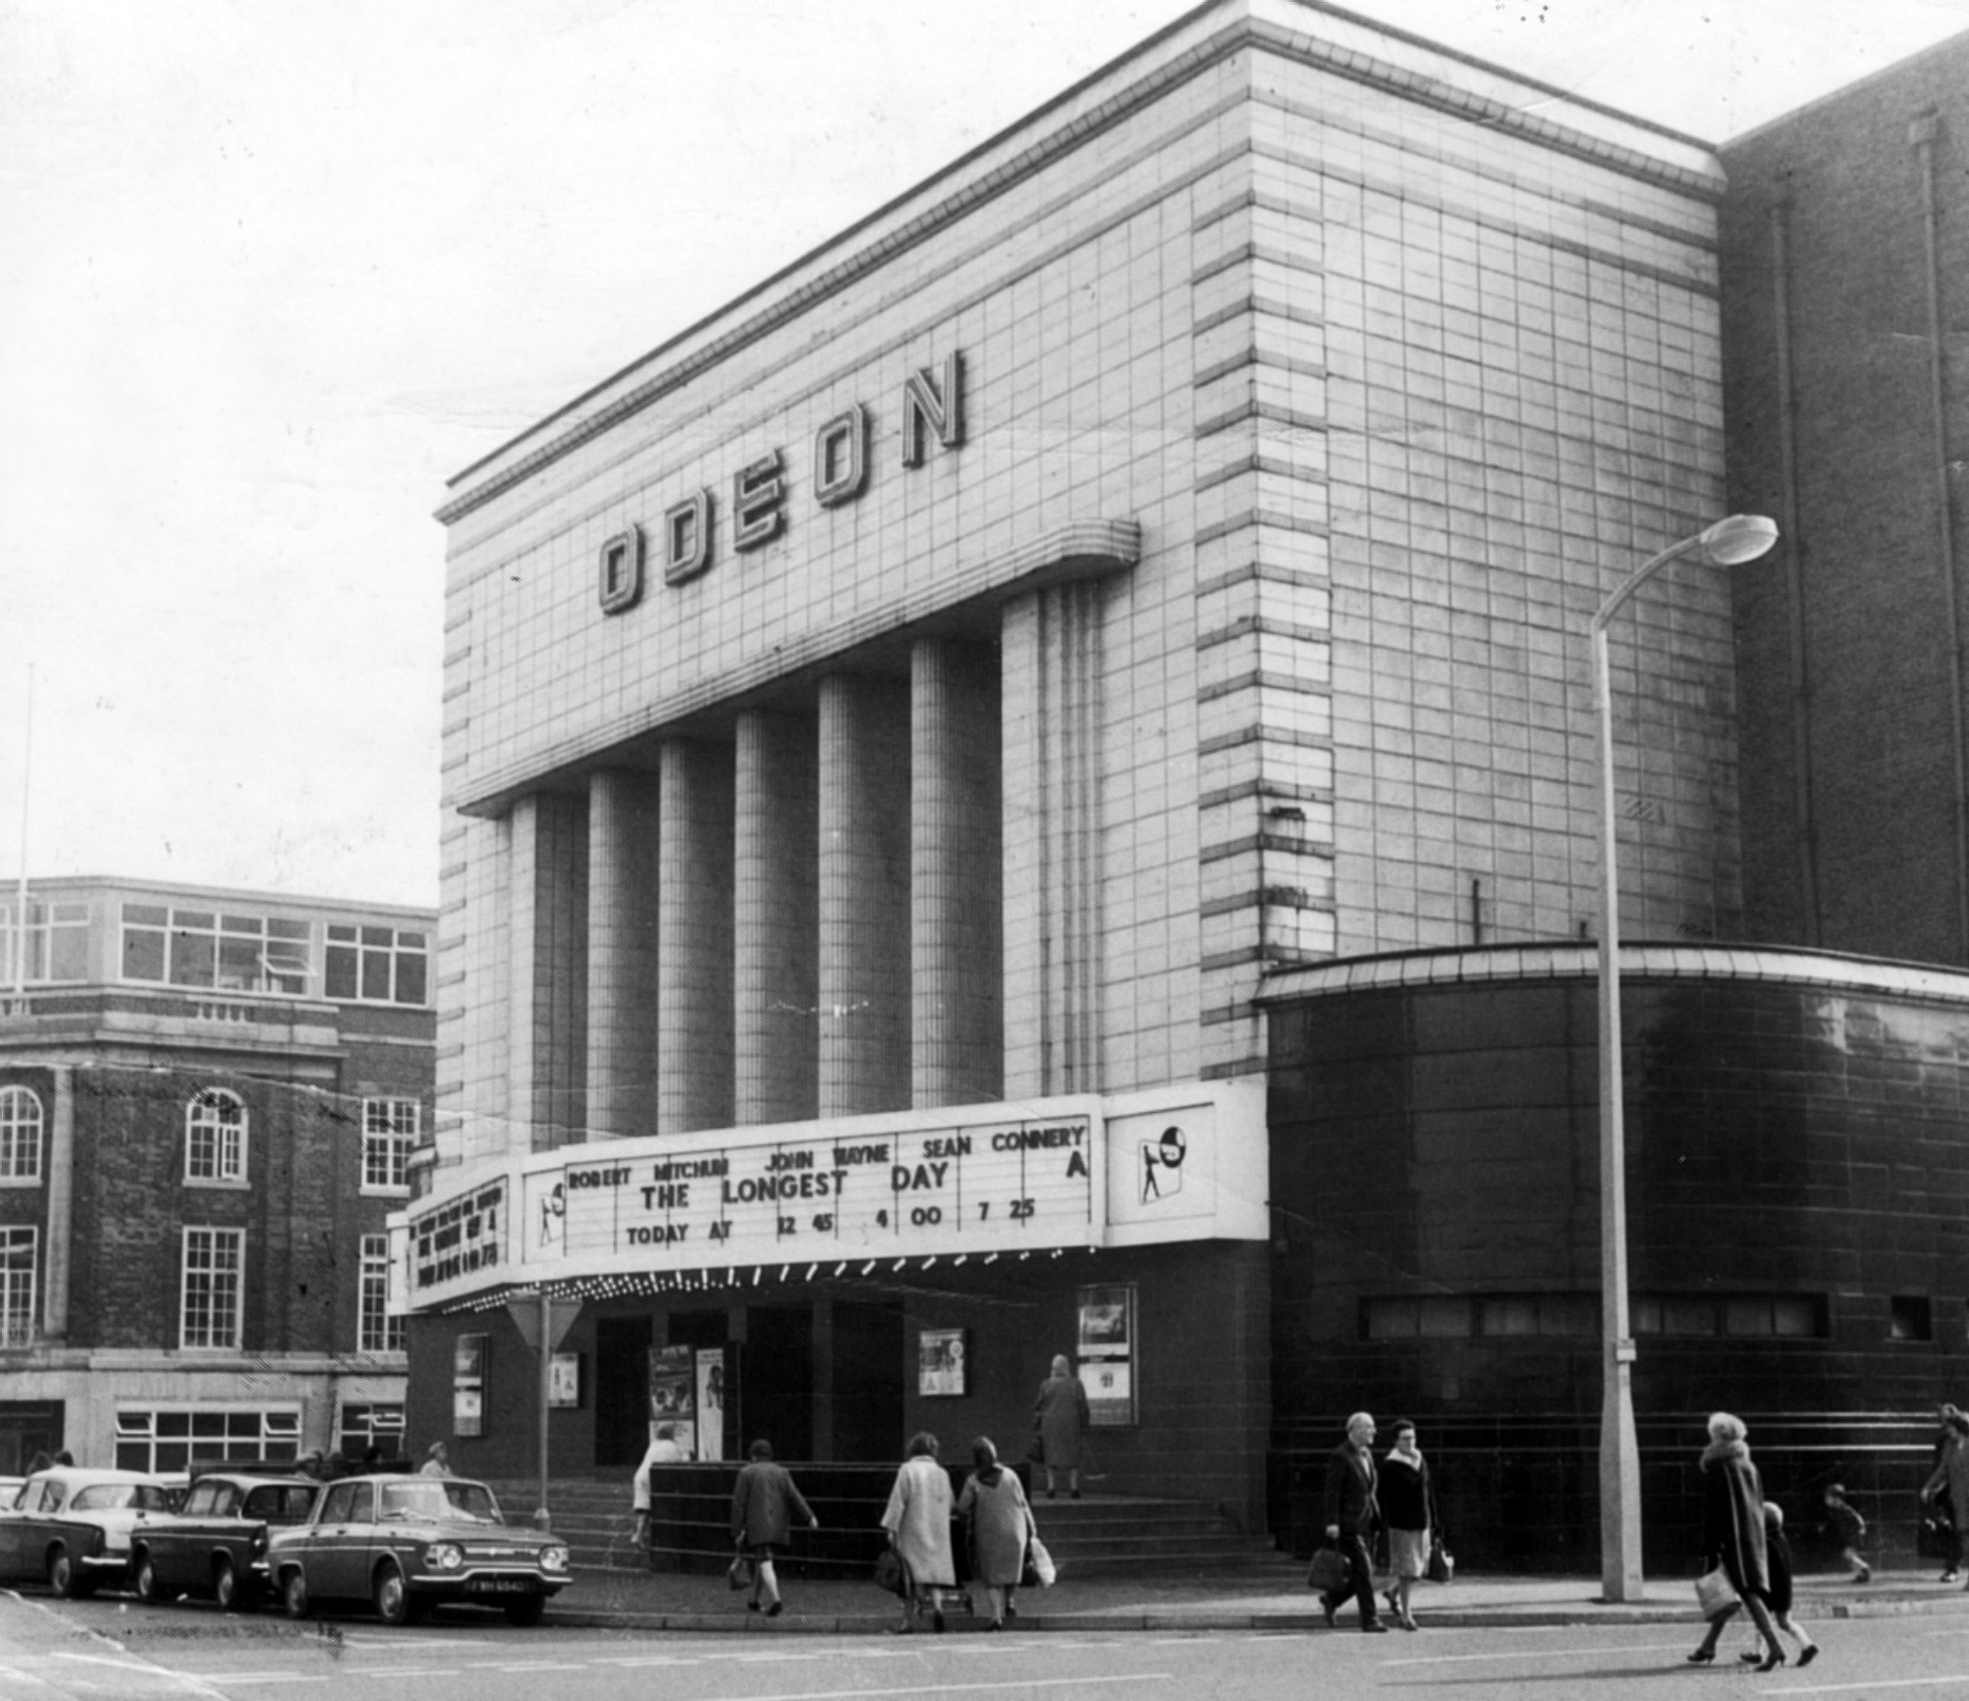 The Bolton News: The Odeon, Ashburner Street in 1969